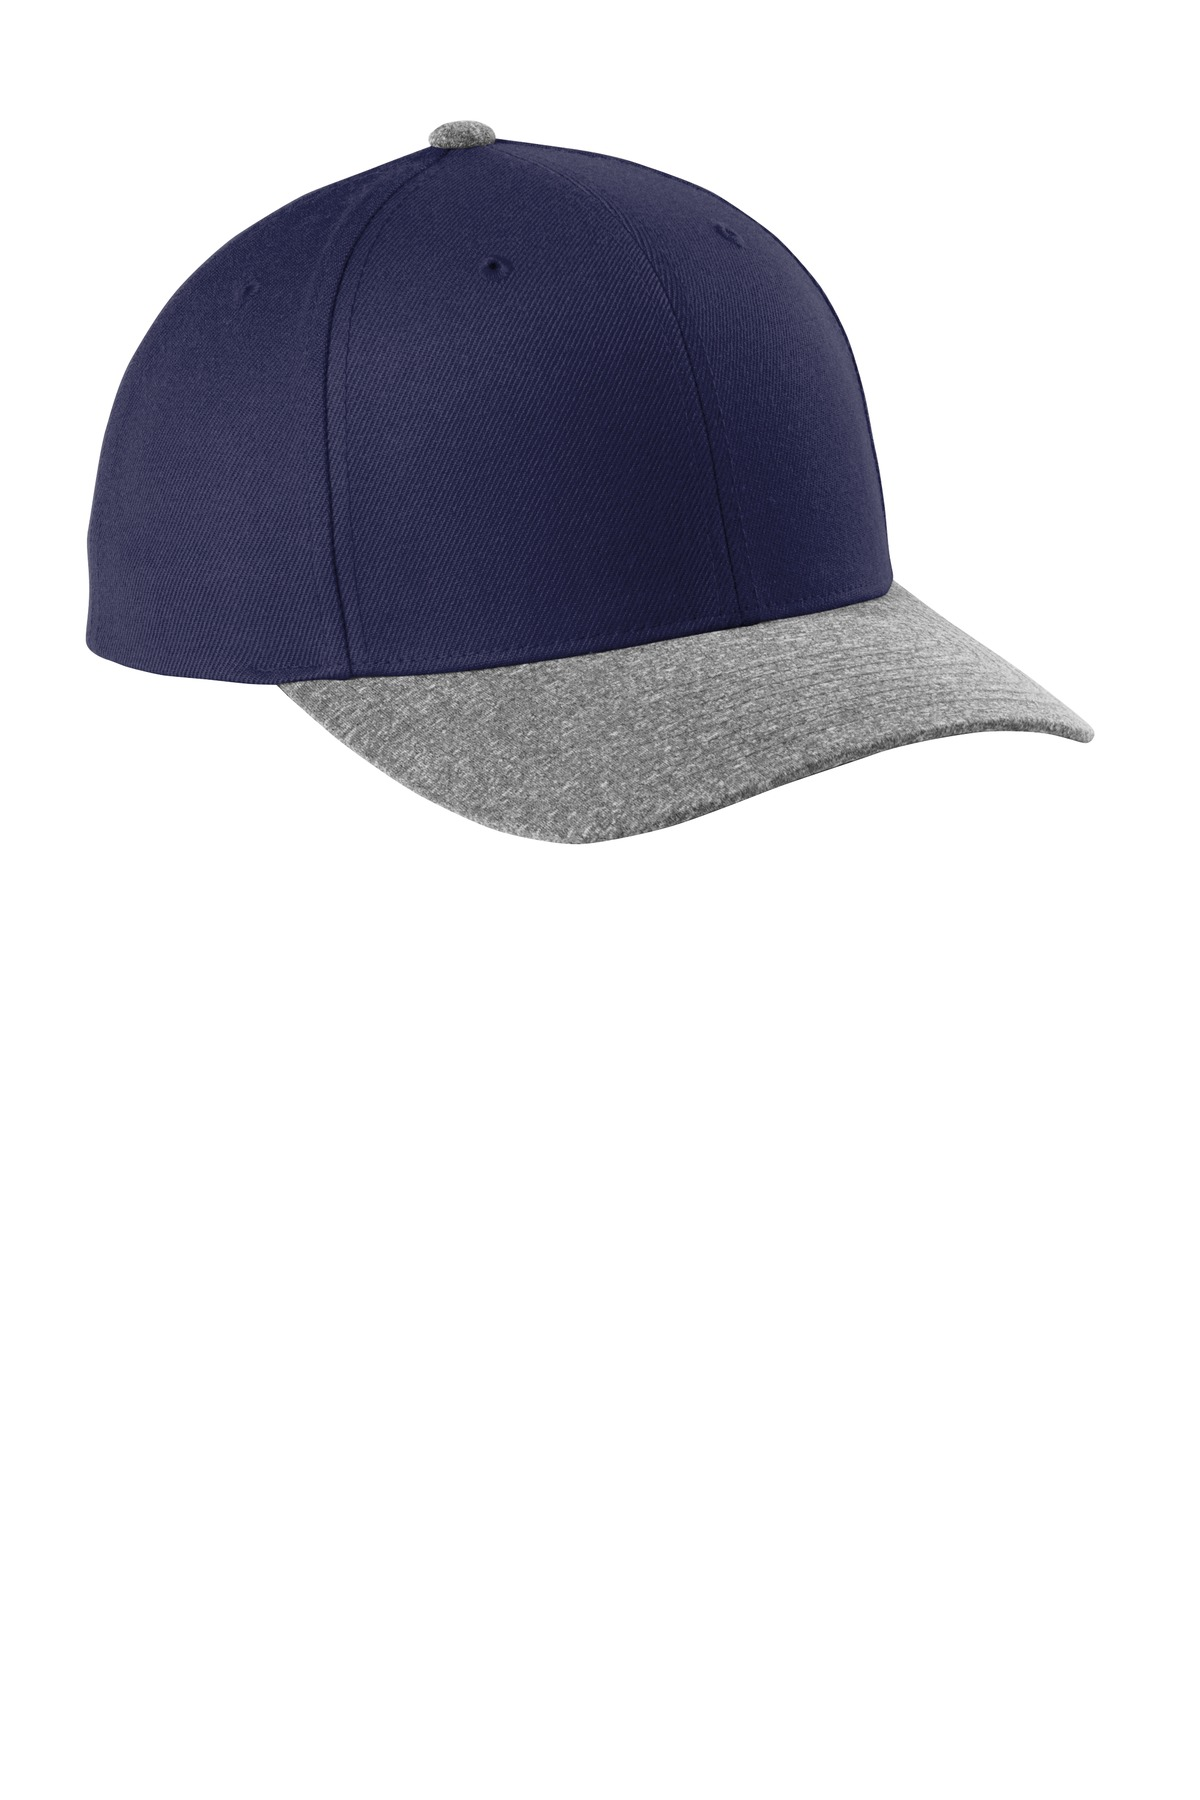 Sport-Tek  ®  Yupoong  ®  Curve Bill Snapback Cap. STC43 - True Navy/ Grey Heather